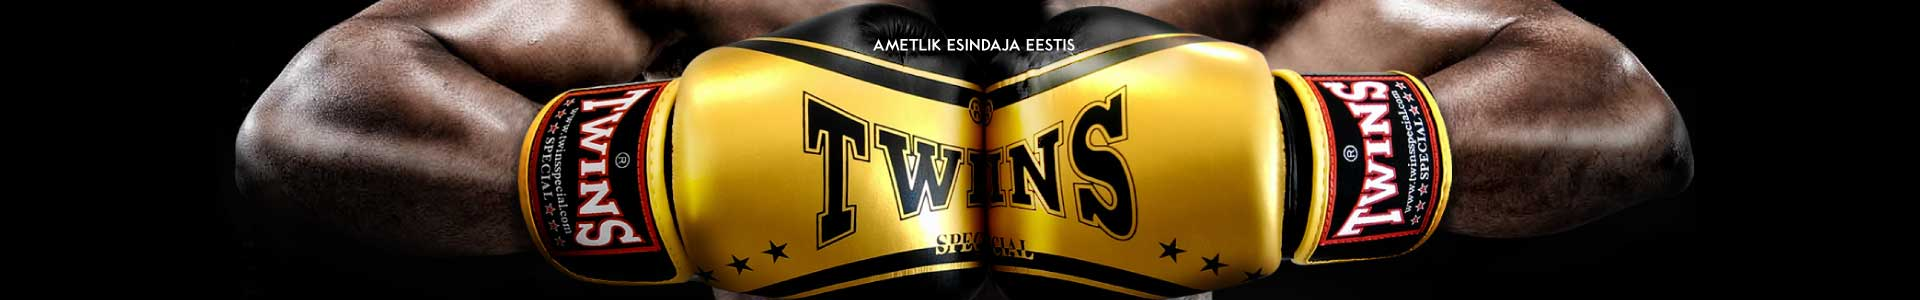 Budopunkt - Twins Special Boxing Eesti